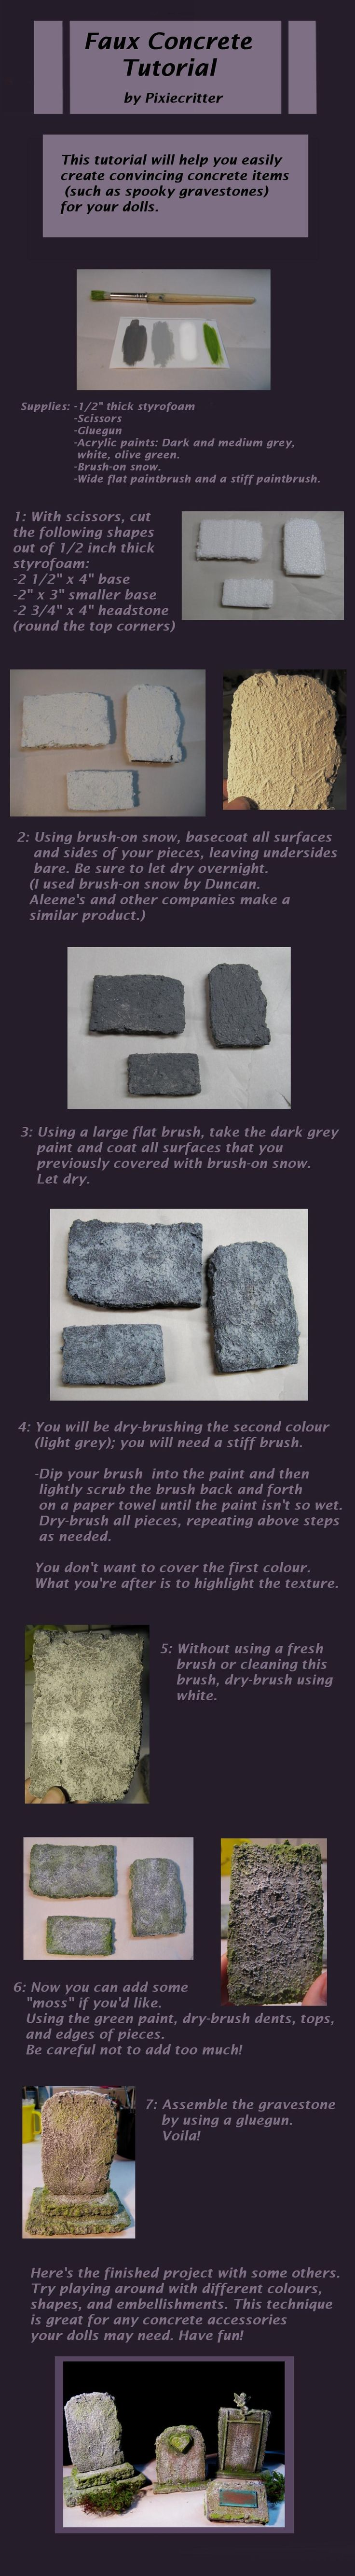 Gravestone Tutorial by Pixiecritter on deviantART.  Cool tutorial. I don't think these would last very long seeing as how they're made of styrofoam, but I could see making these as great Halloween decorations or something.